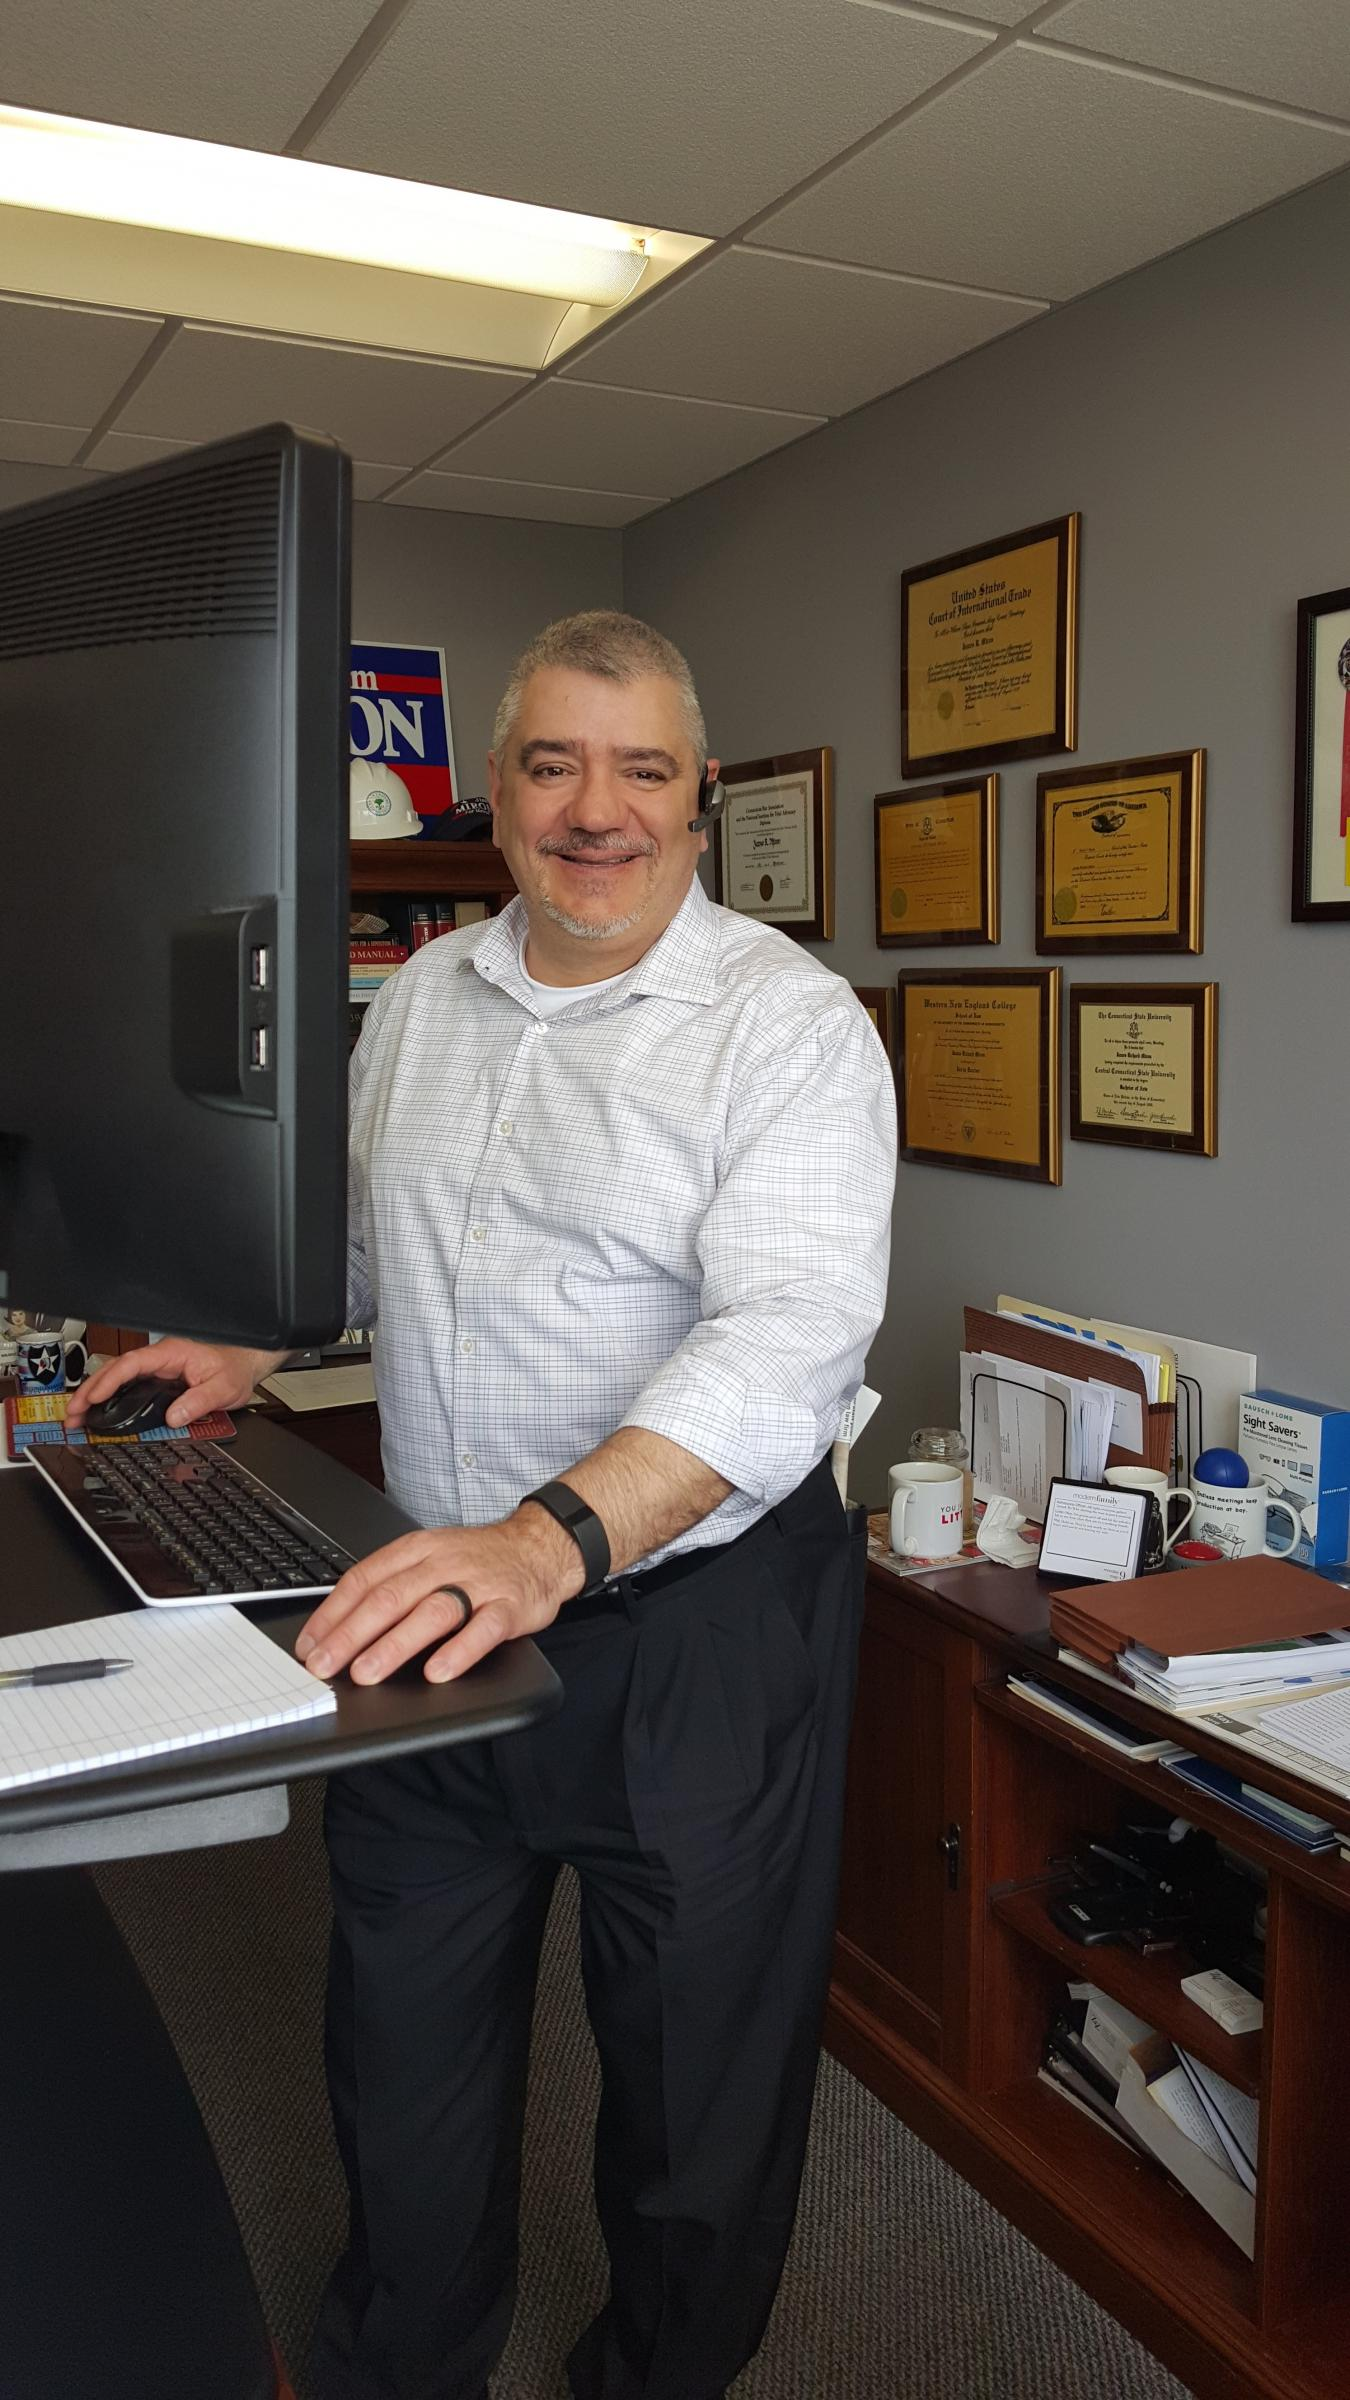 attorney Jim Miron at standing desk in his office